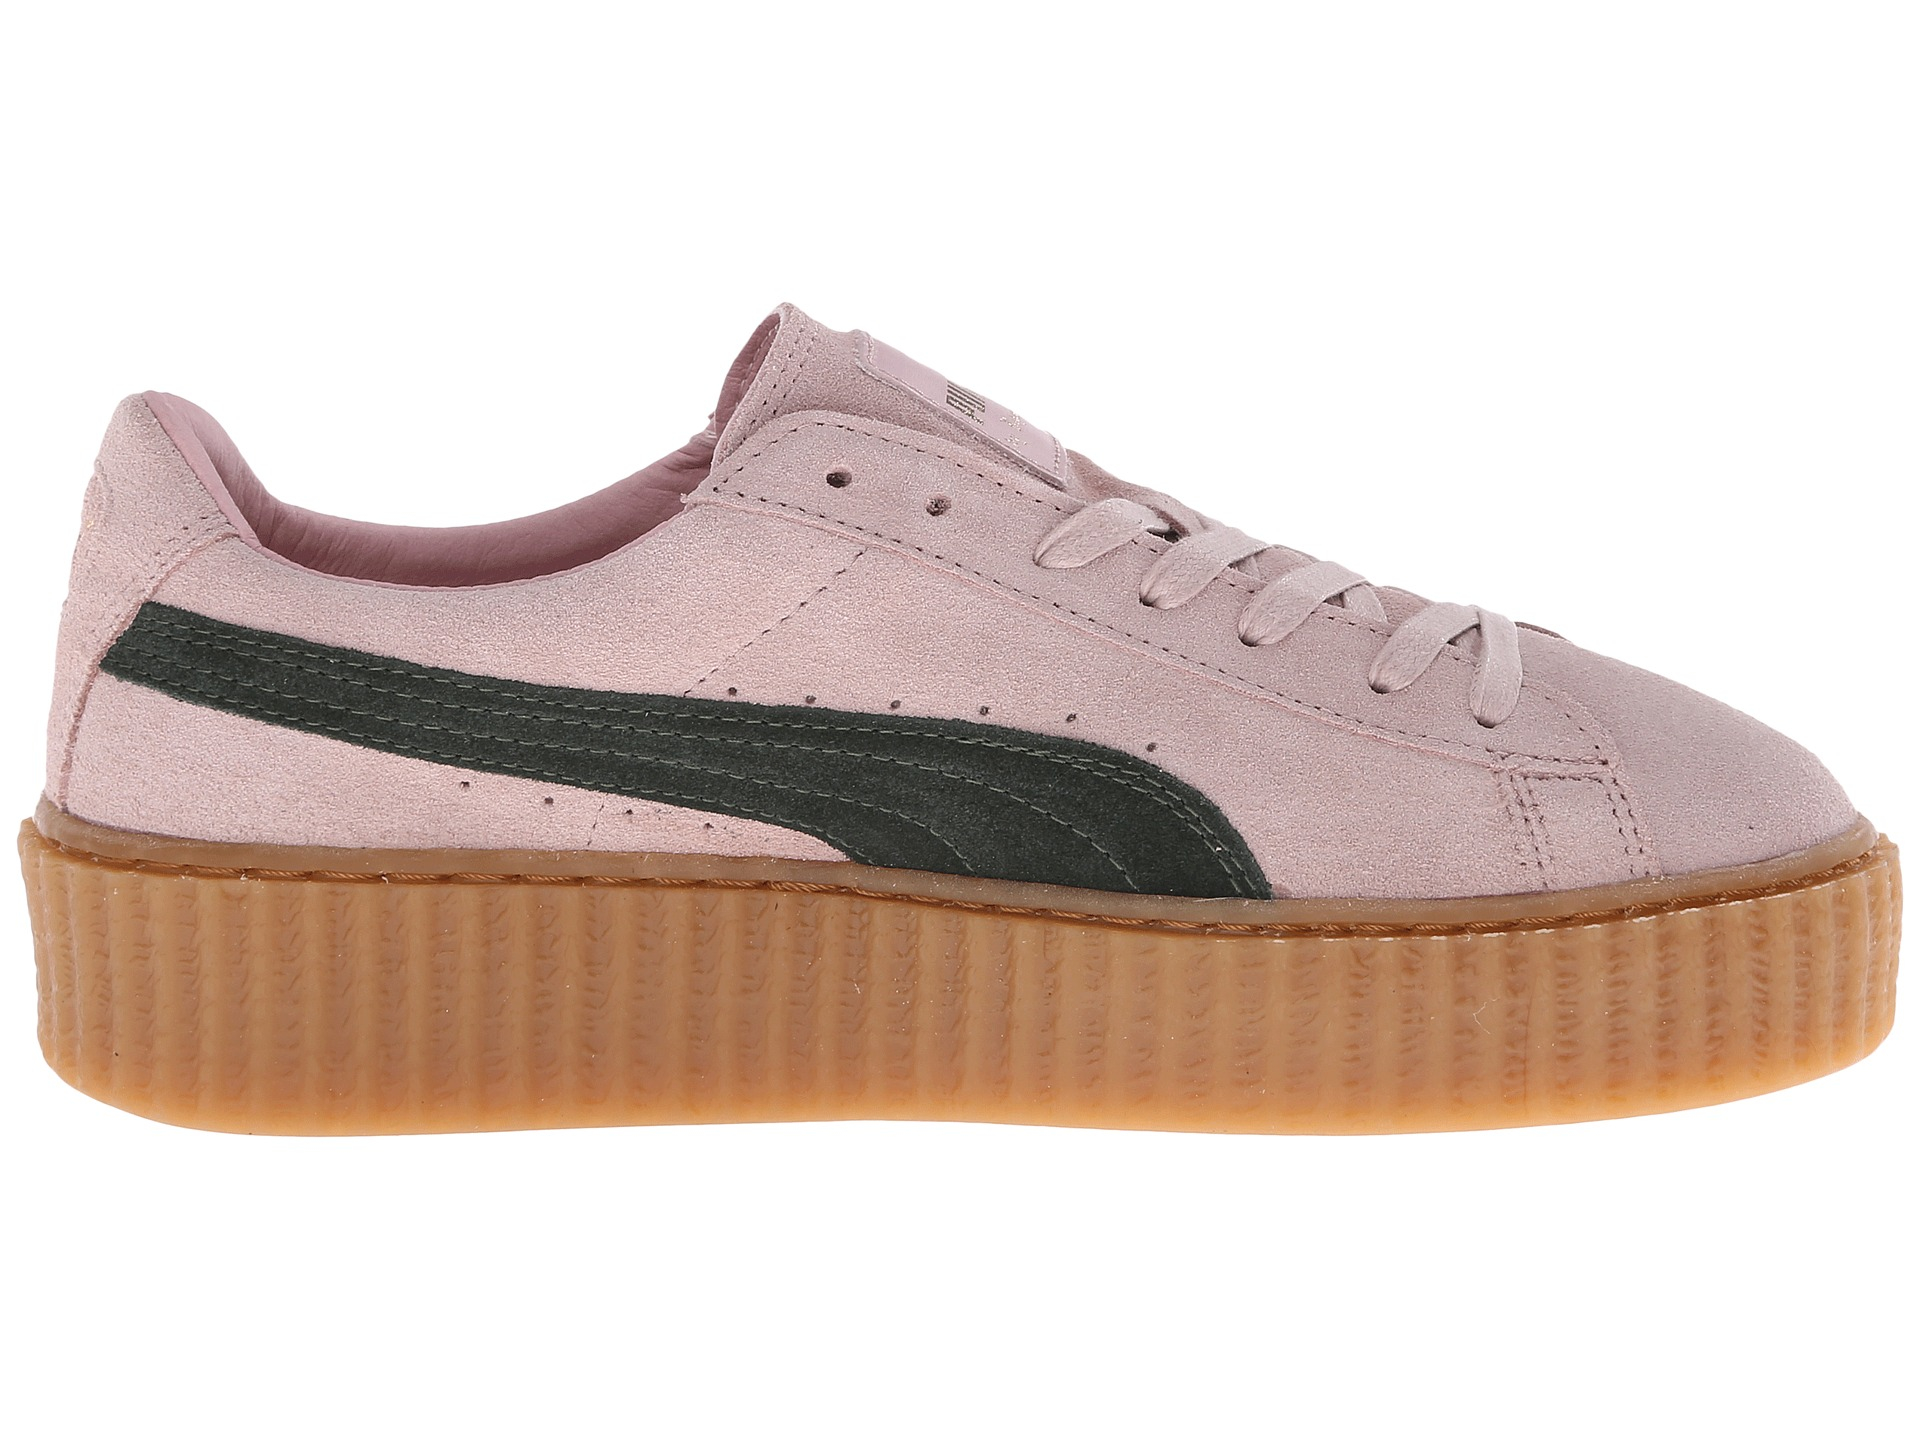 reputable site 6b388 c519c Women's Pink Rihanna X Suede Creepers